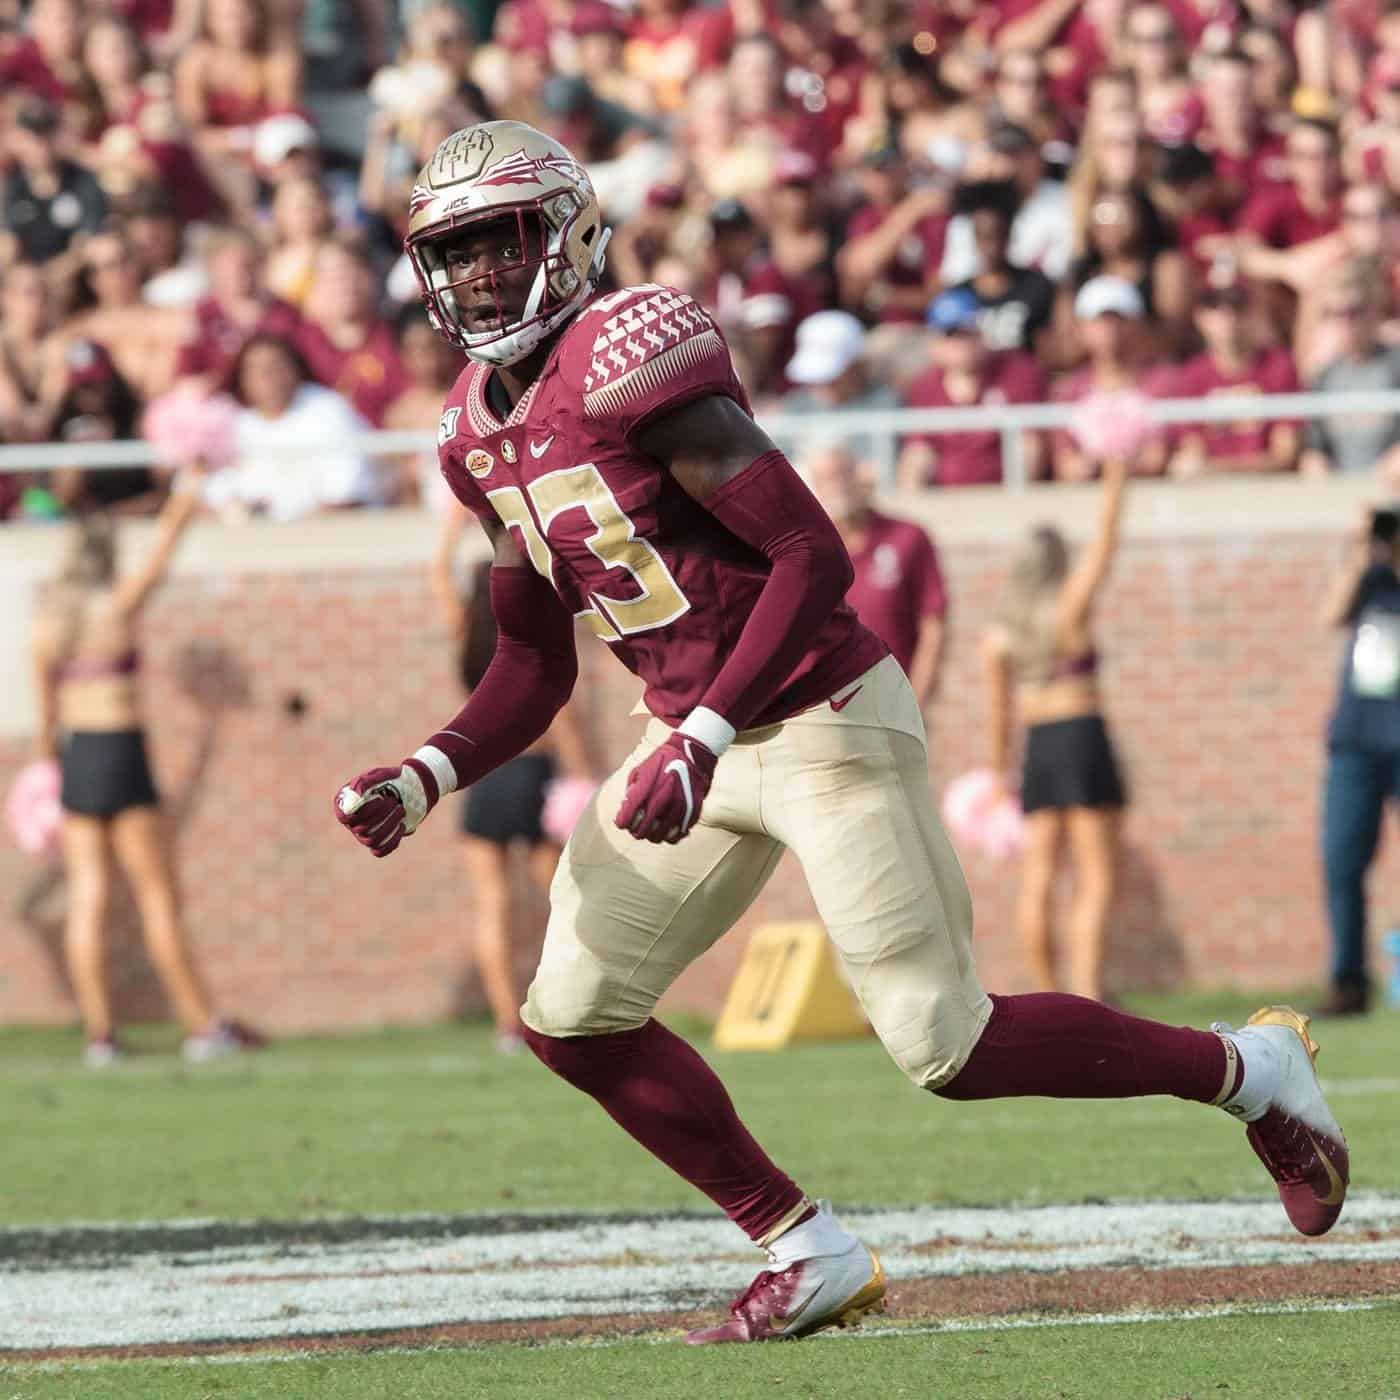 2021 NFL Draft: Is safety Hamsah Nasirildeen the next Simmons?